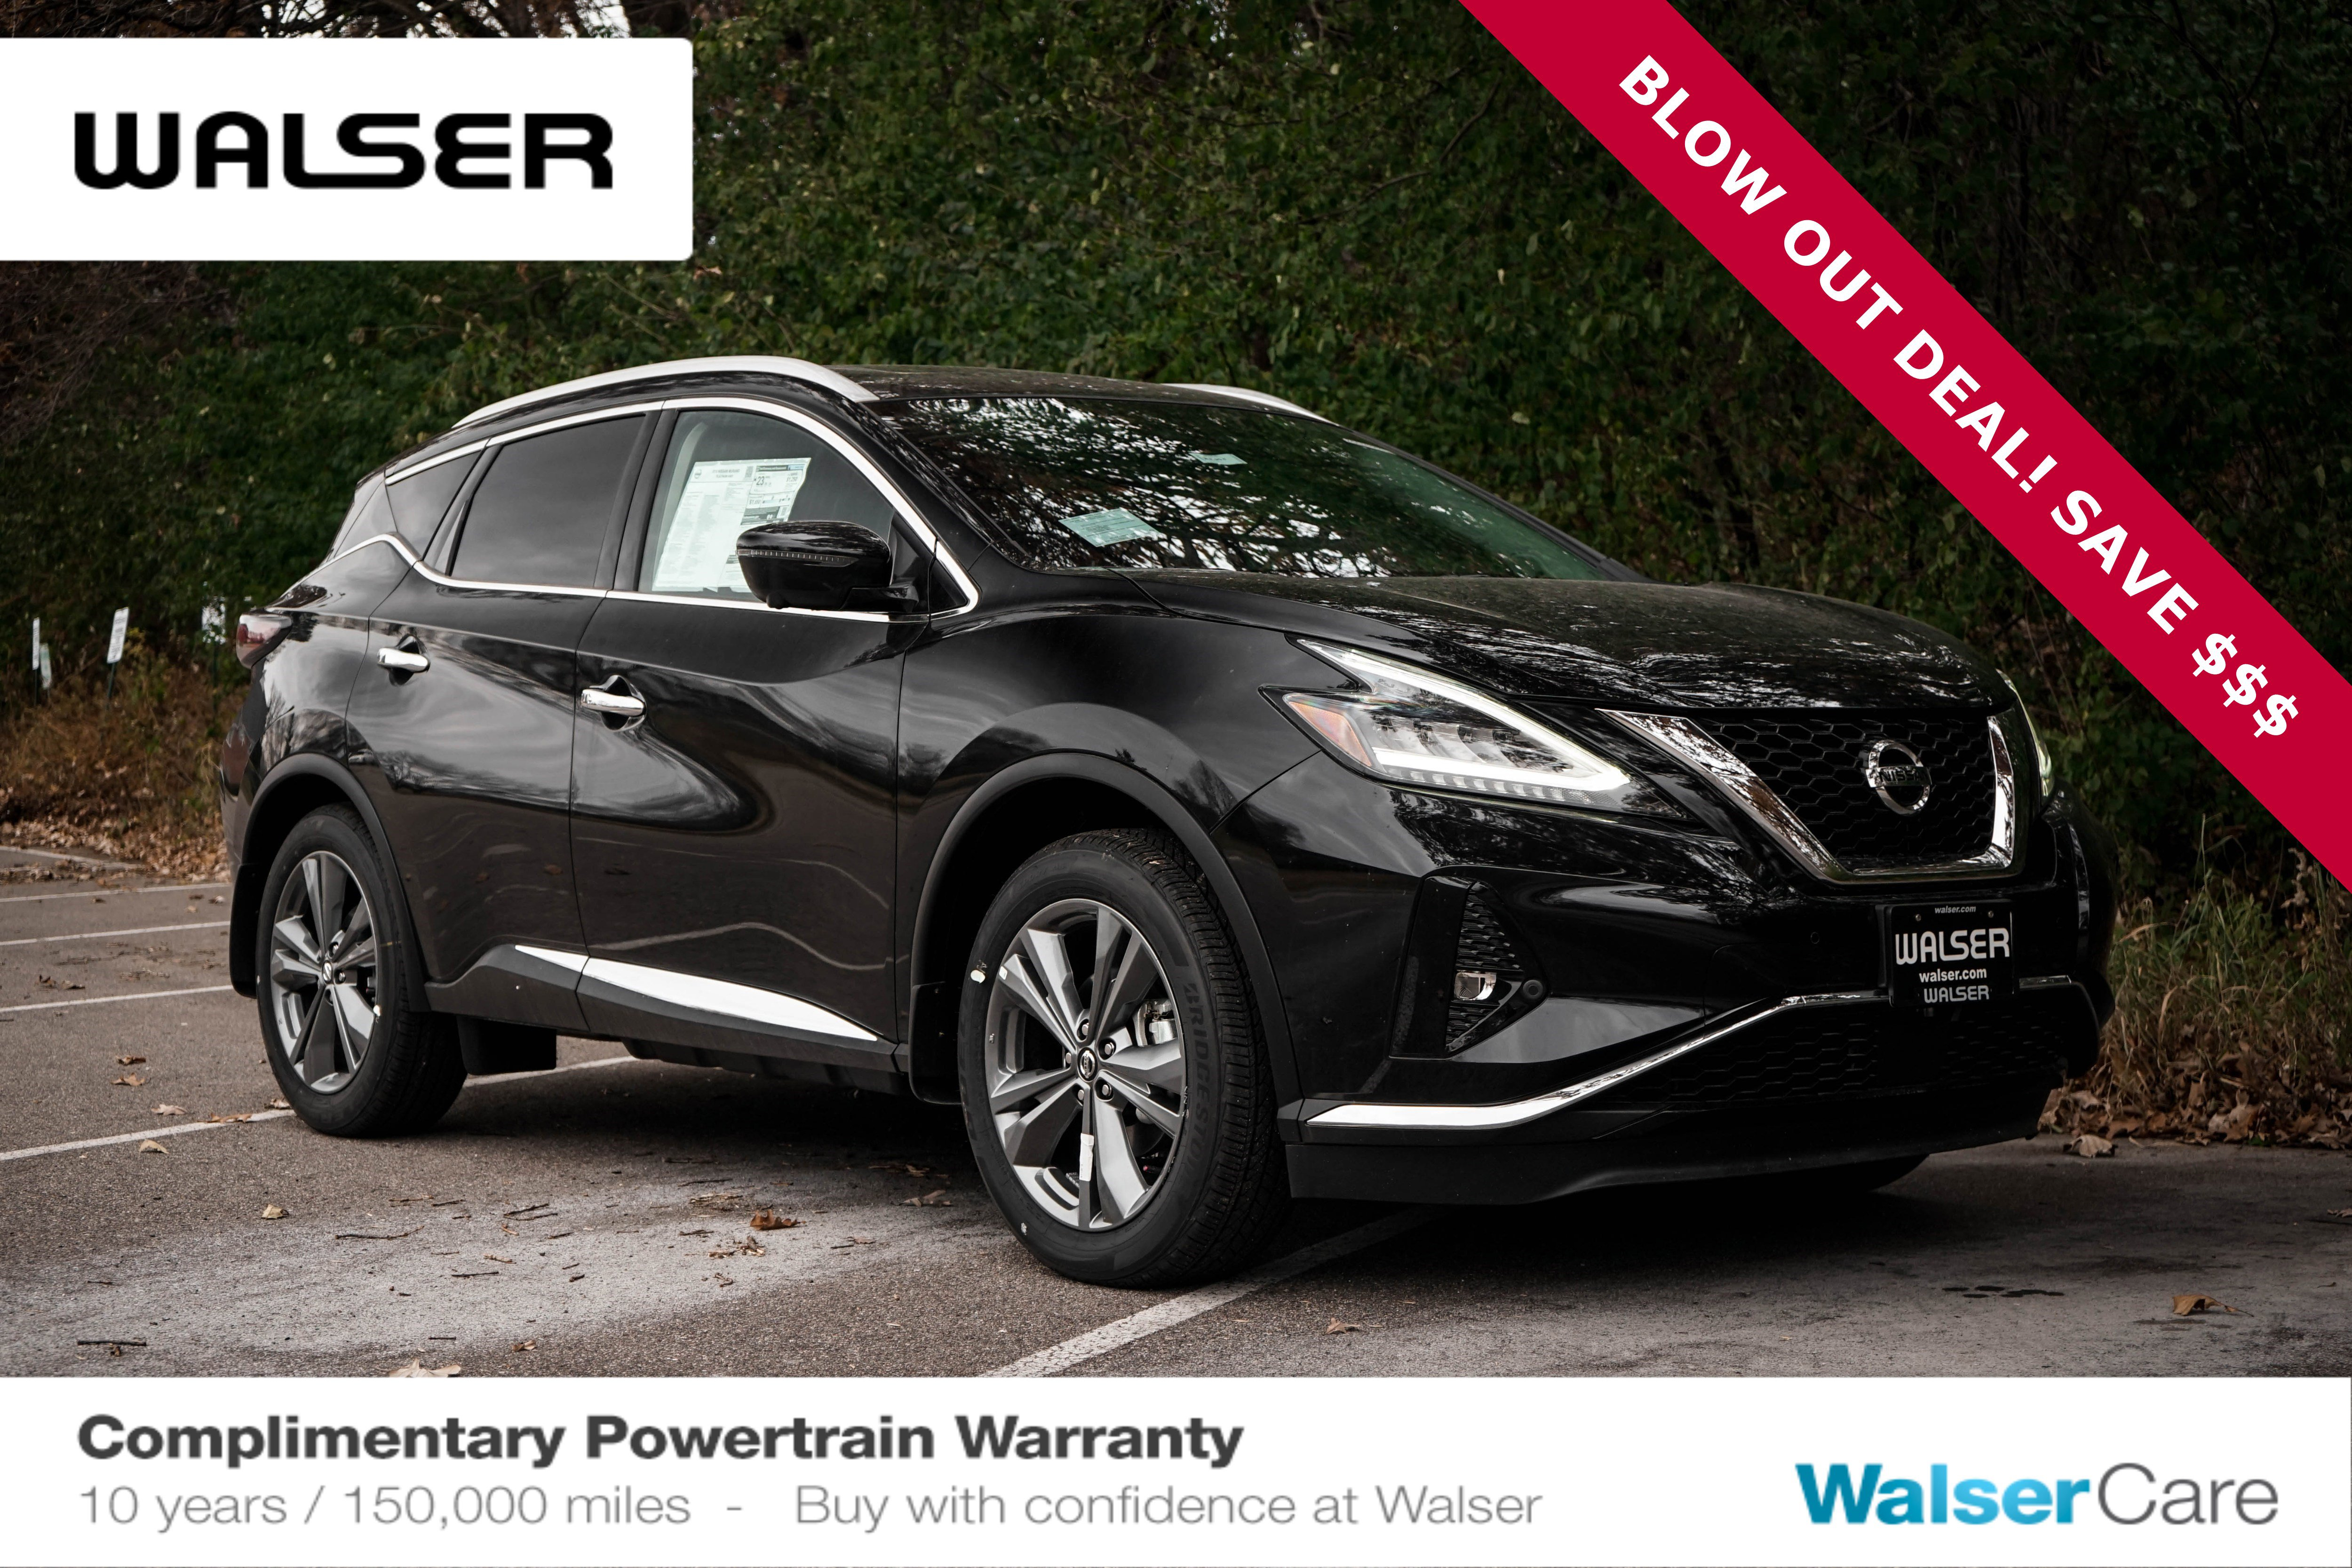 2019 Nissan Murano AWD Platinum Lease Deals